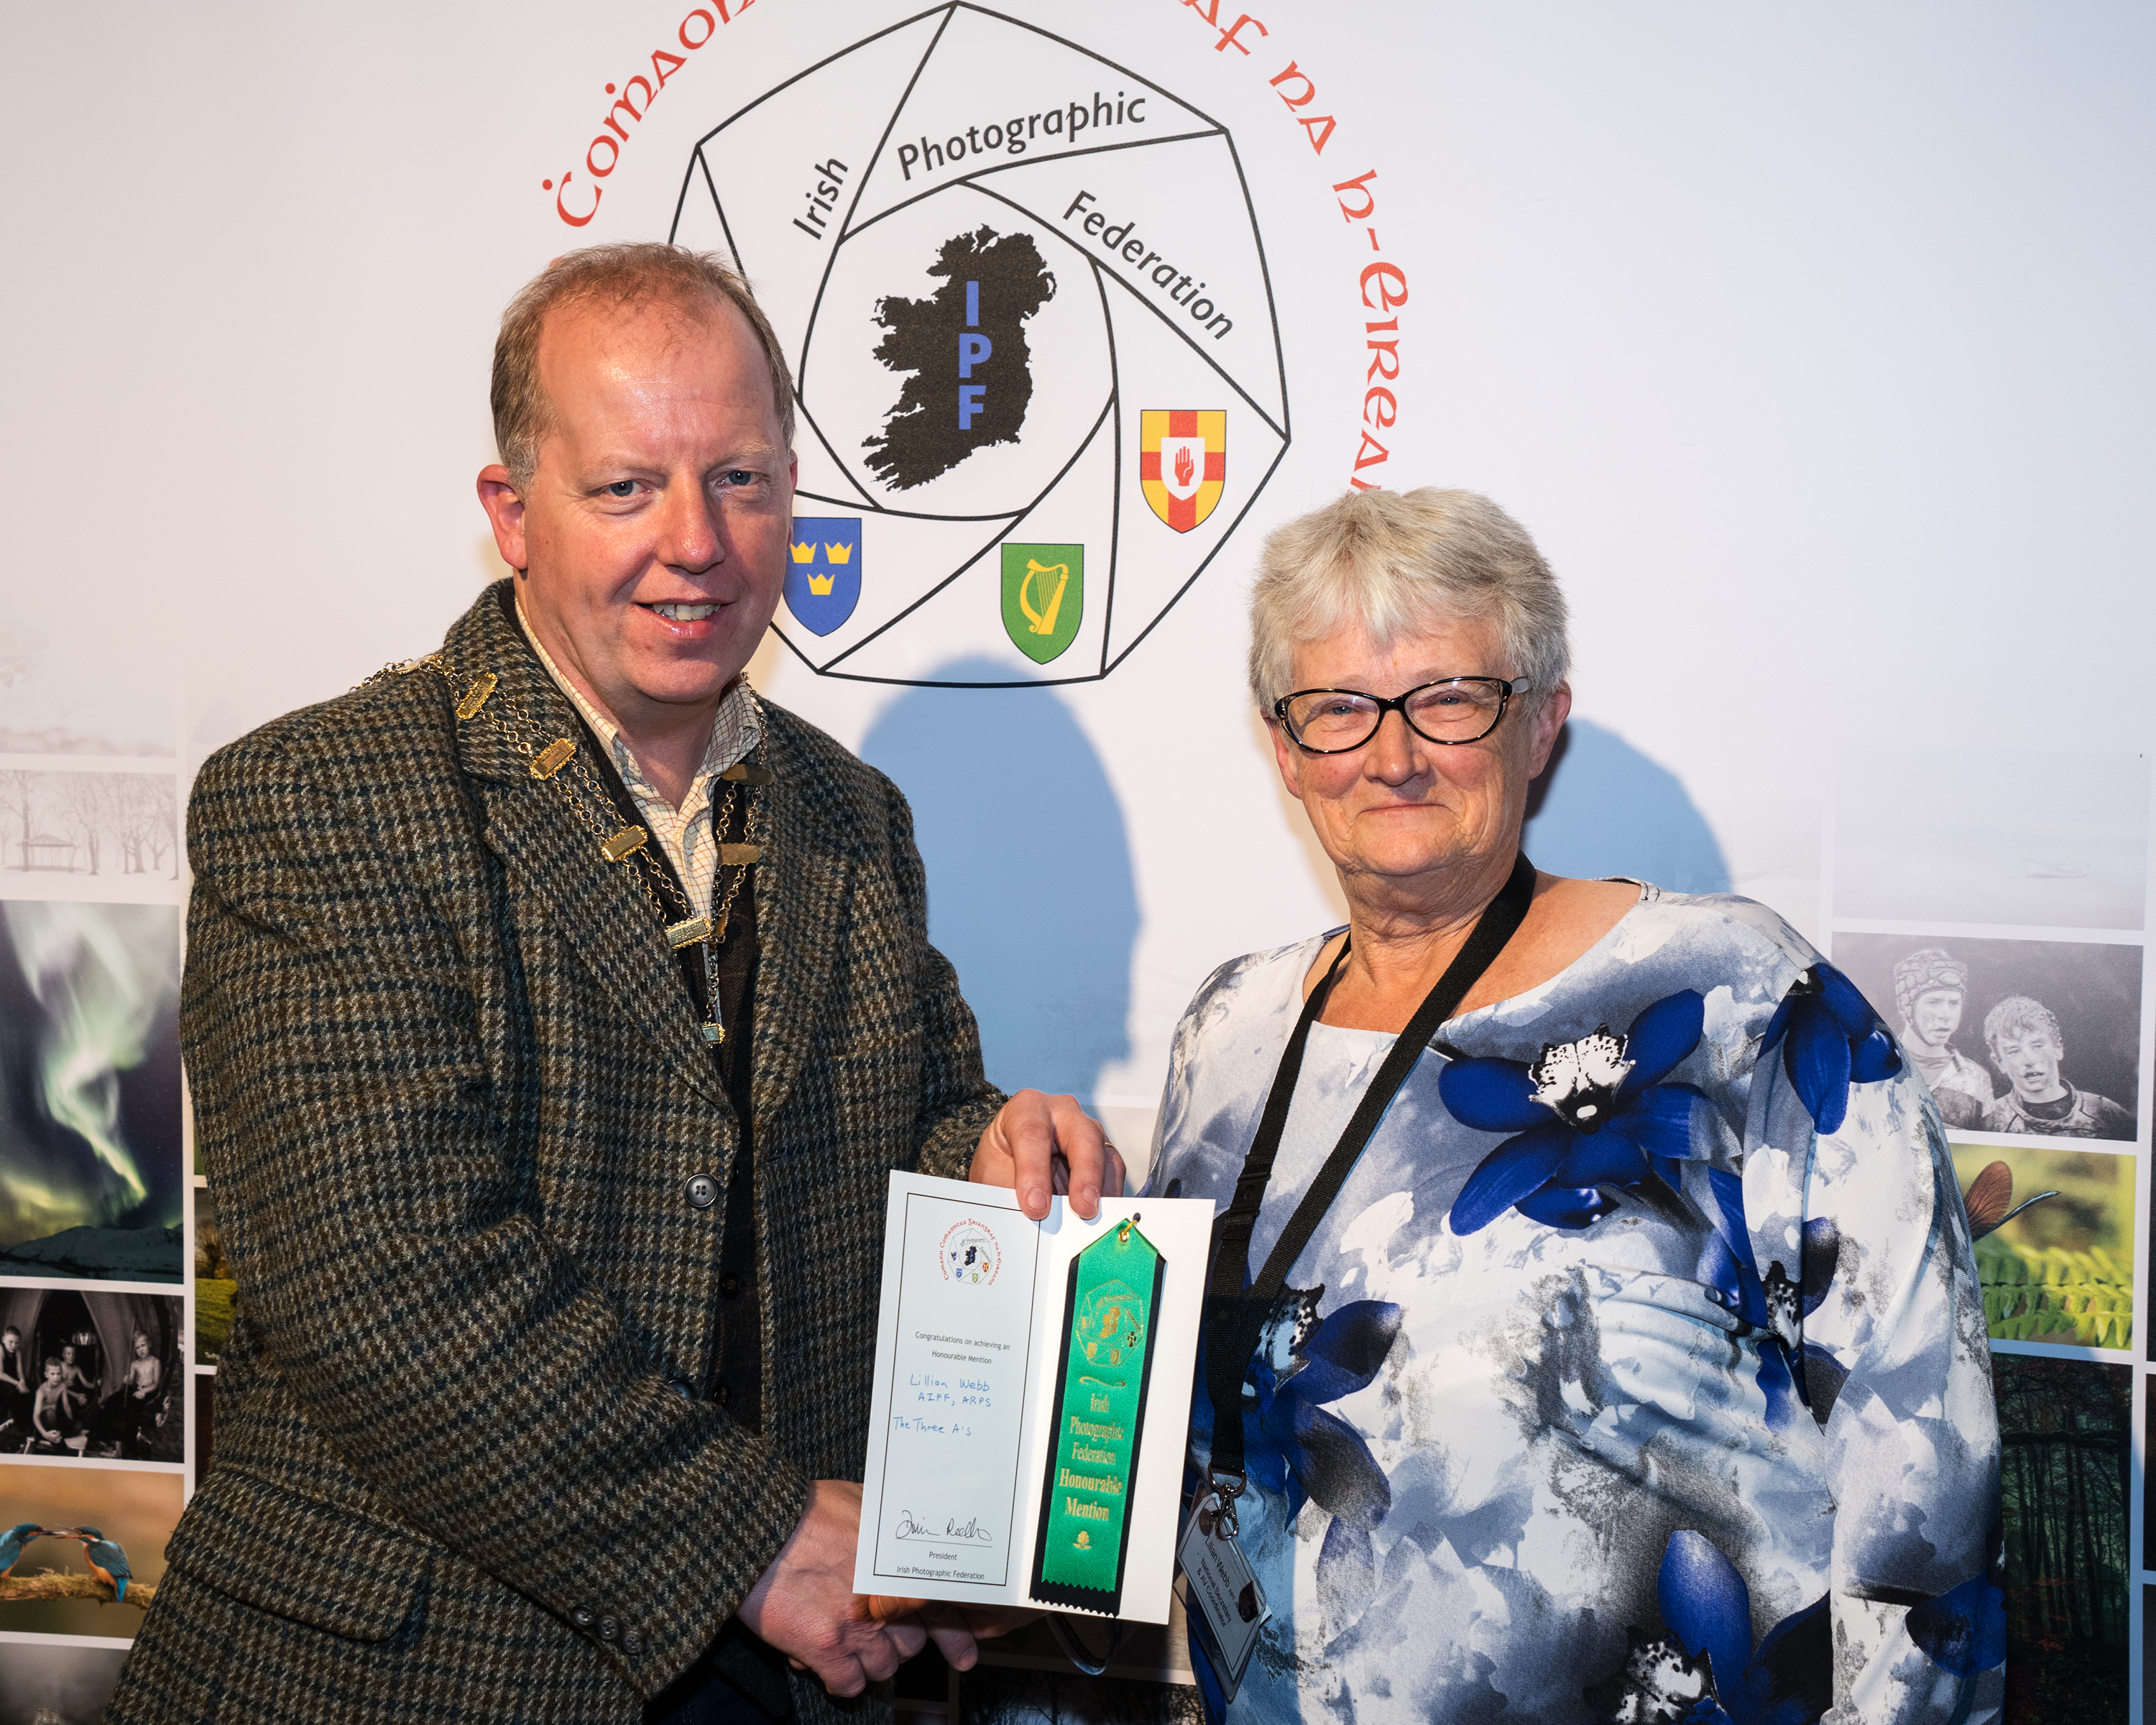 Dominic Reddin, FIPF presenting an Honourable Mention Certificate to Lilian Webb, AIPF ARPS